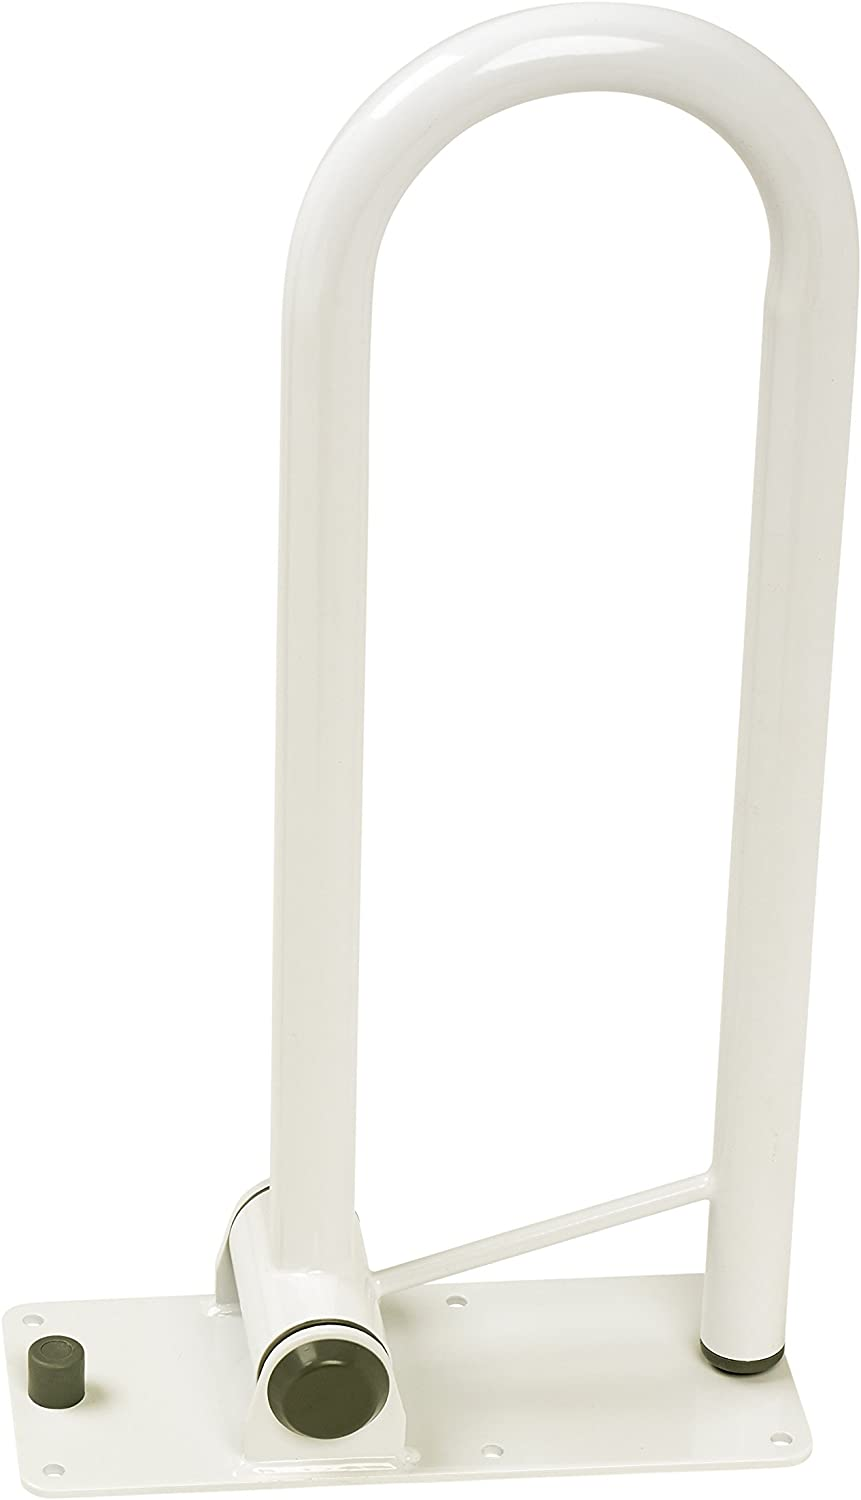 Homecraft Devon MKII Folding Support Rail - 55 cm/21.5 inch (Eligible for VAT Relief in The UK)